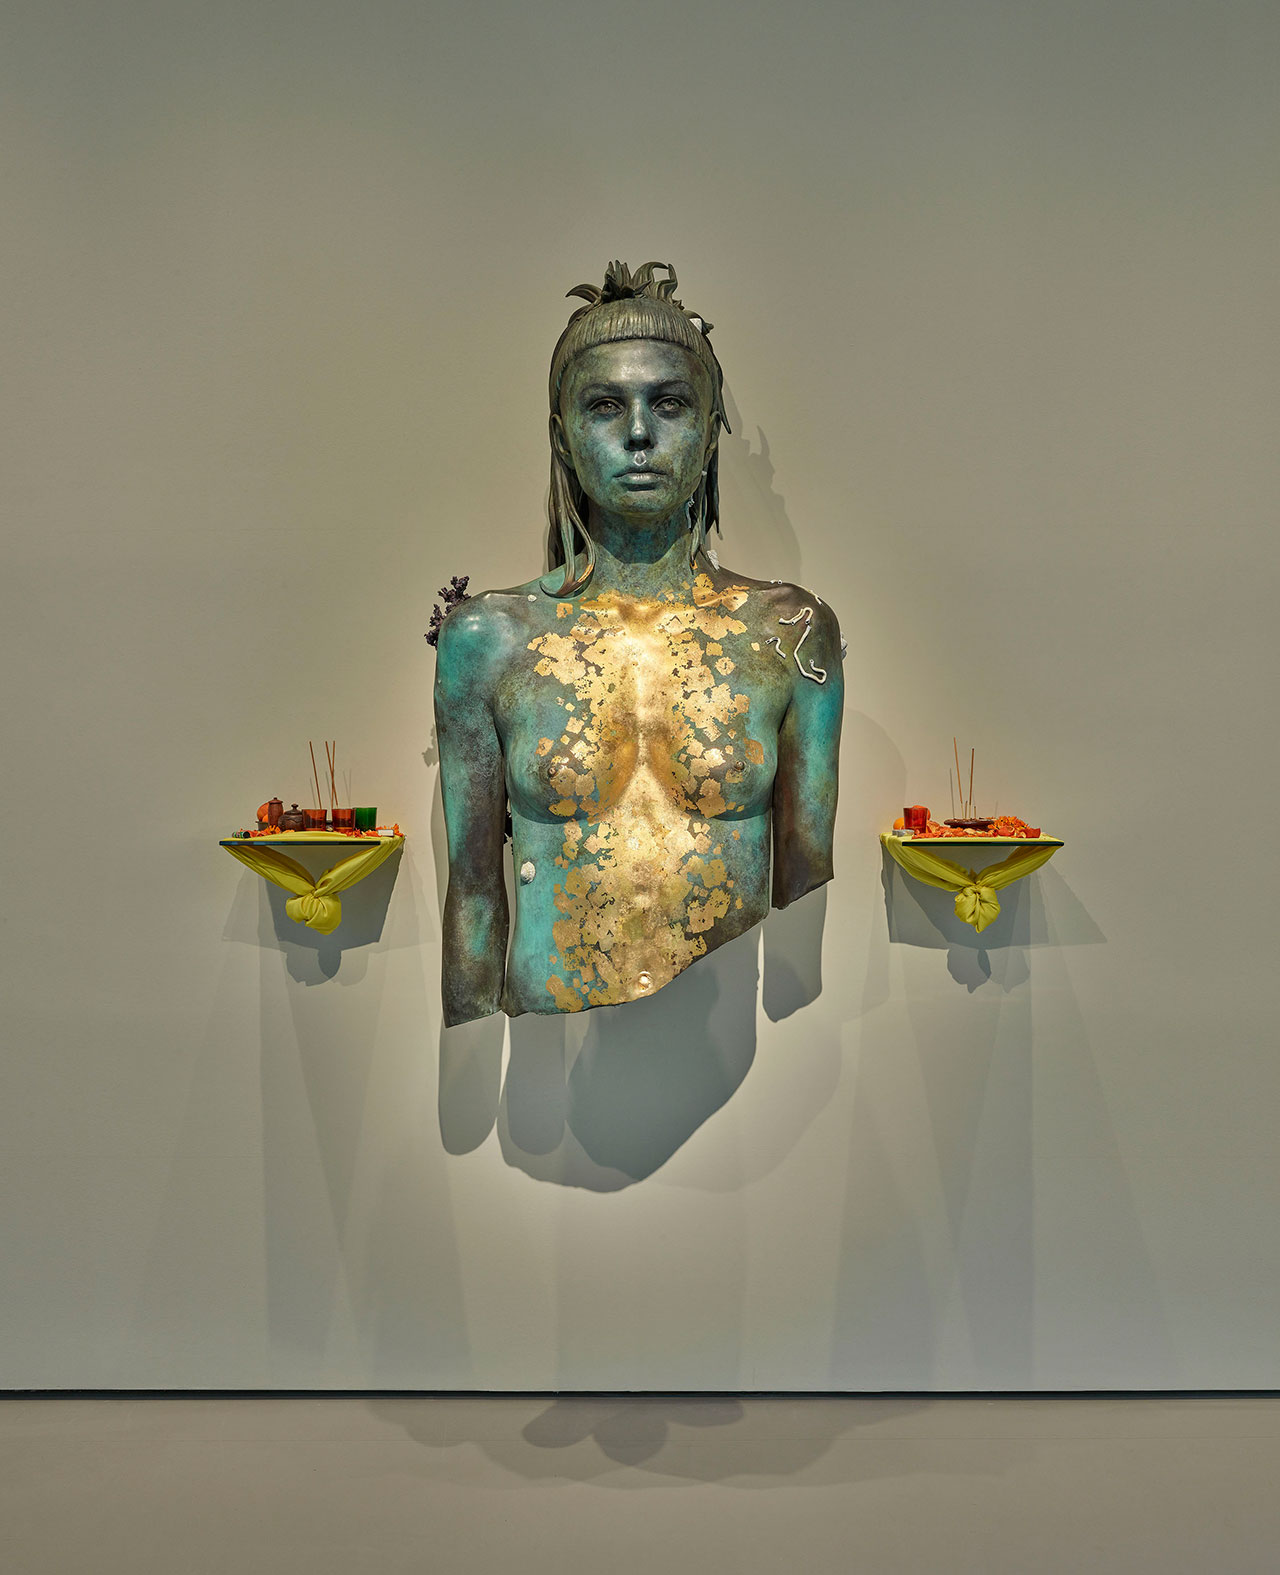 From Palazzo Grassi, Room 11: Damien Hirst, Aspect of Katie Ishtar ¥o-landi. Photographed by Prudence Cuming Associates © Damien Hirst and Science Ltd. All rights reserved, DACS/SIAE 2017.